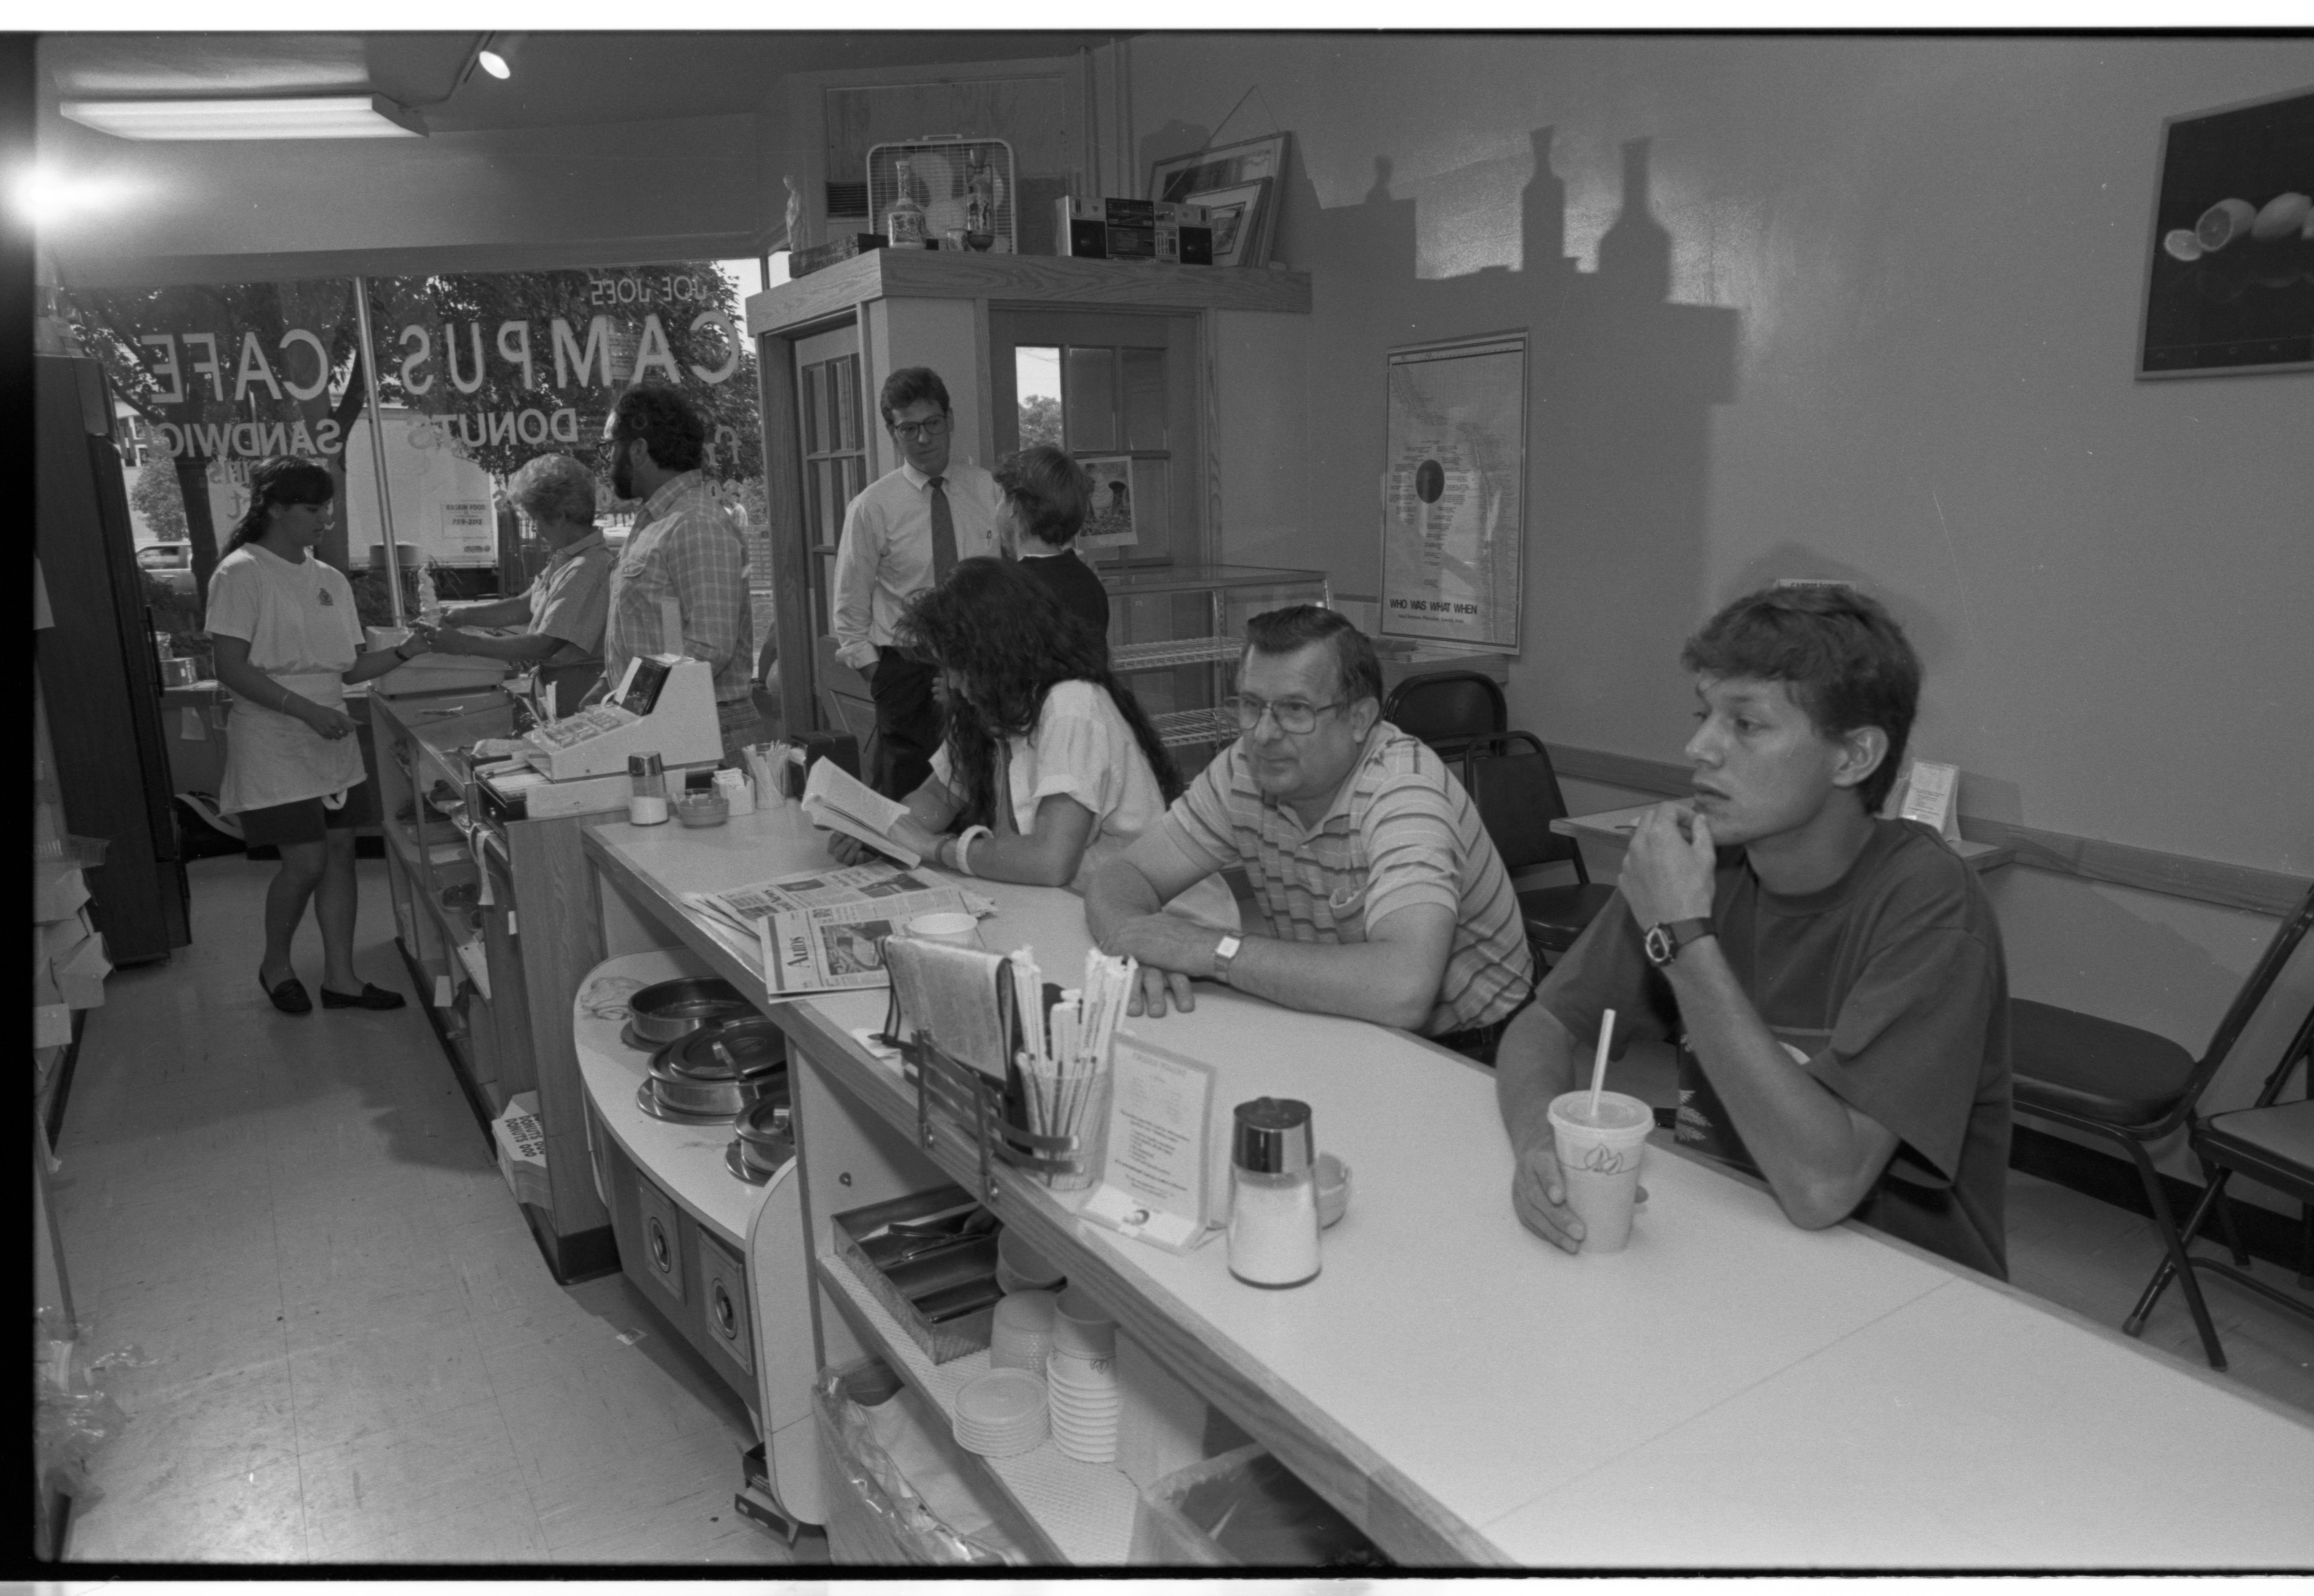 Joe Joe's Campus Cafe, July 1990 image